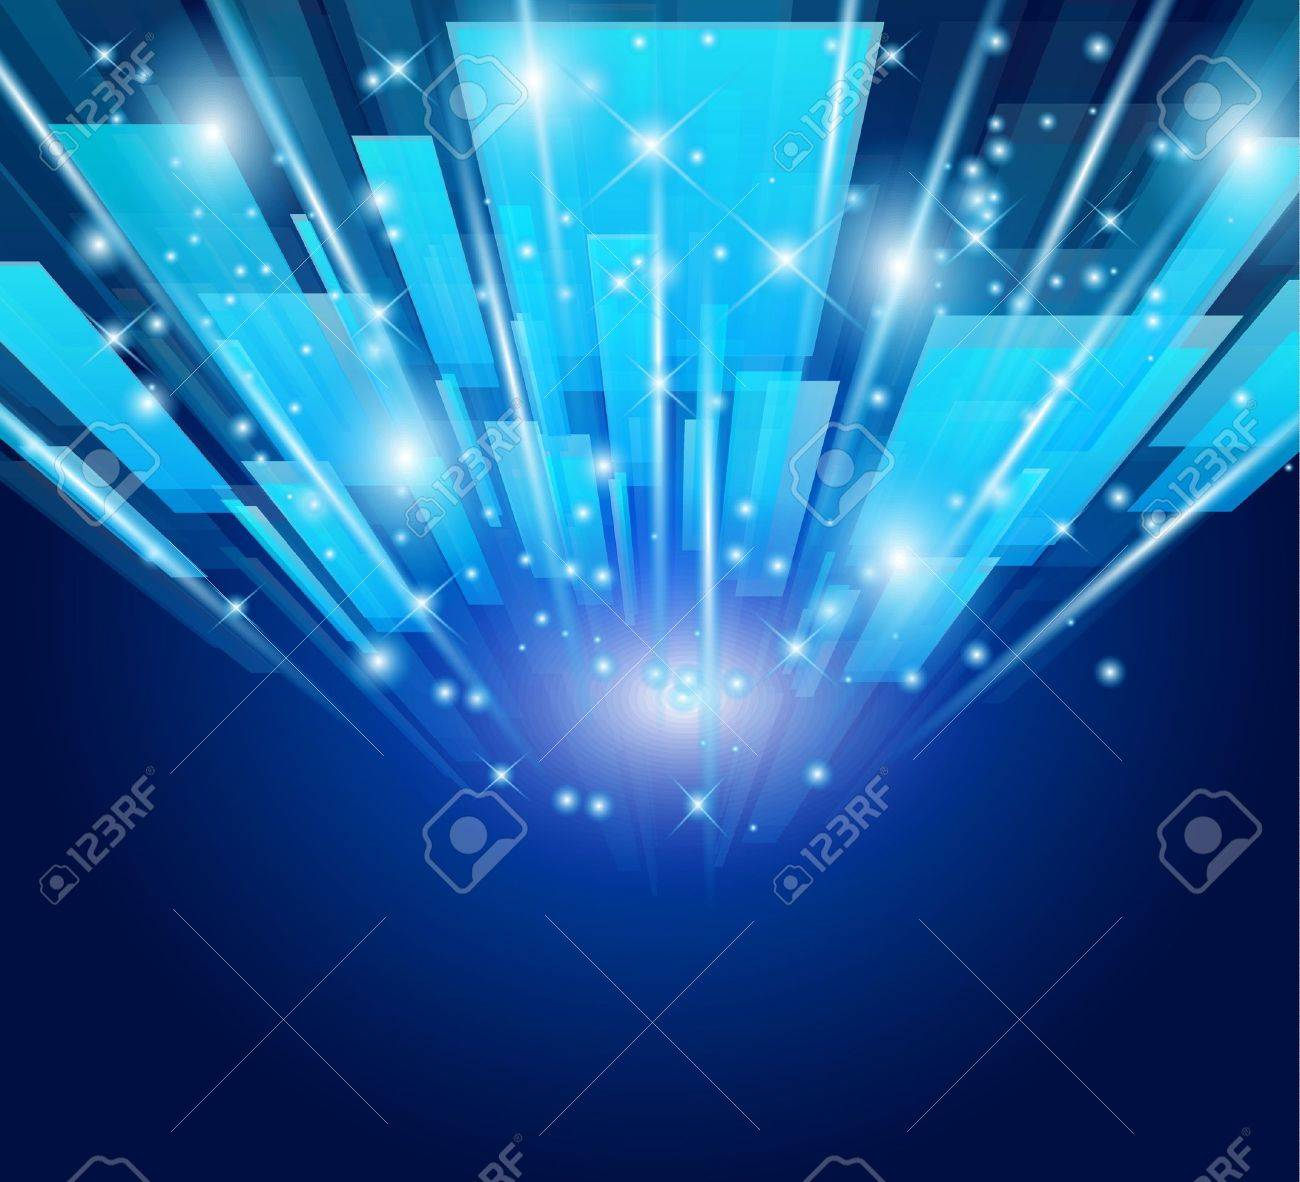 Abstract Glow Of Lights For Business Or Corporate Flyers ...